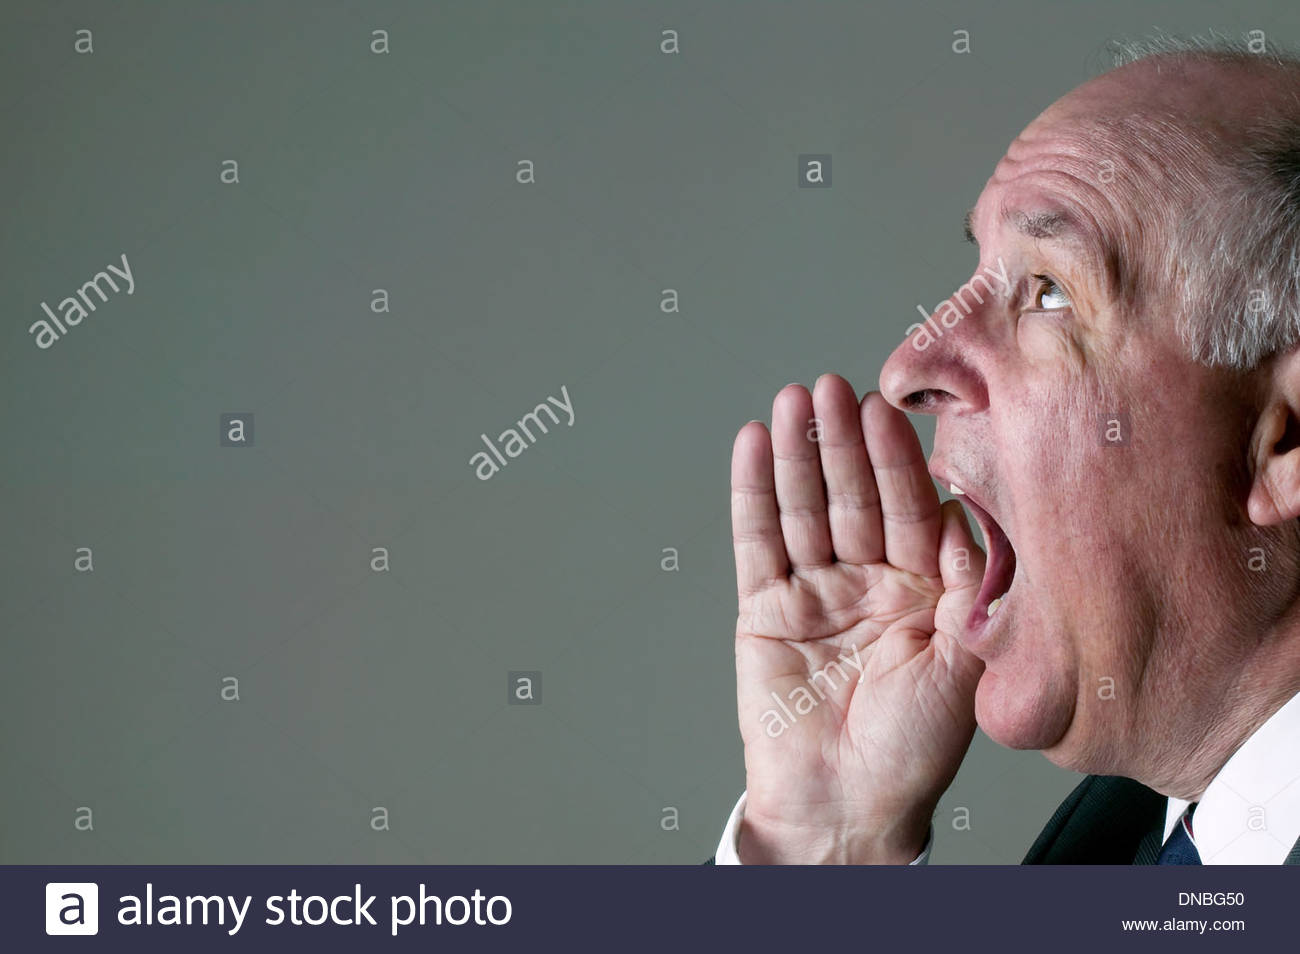 Senior businessman shouting with his hand to his mouth. - Stock Image